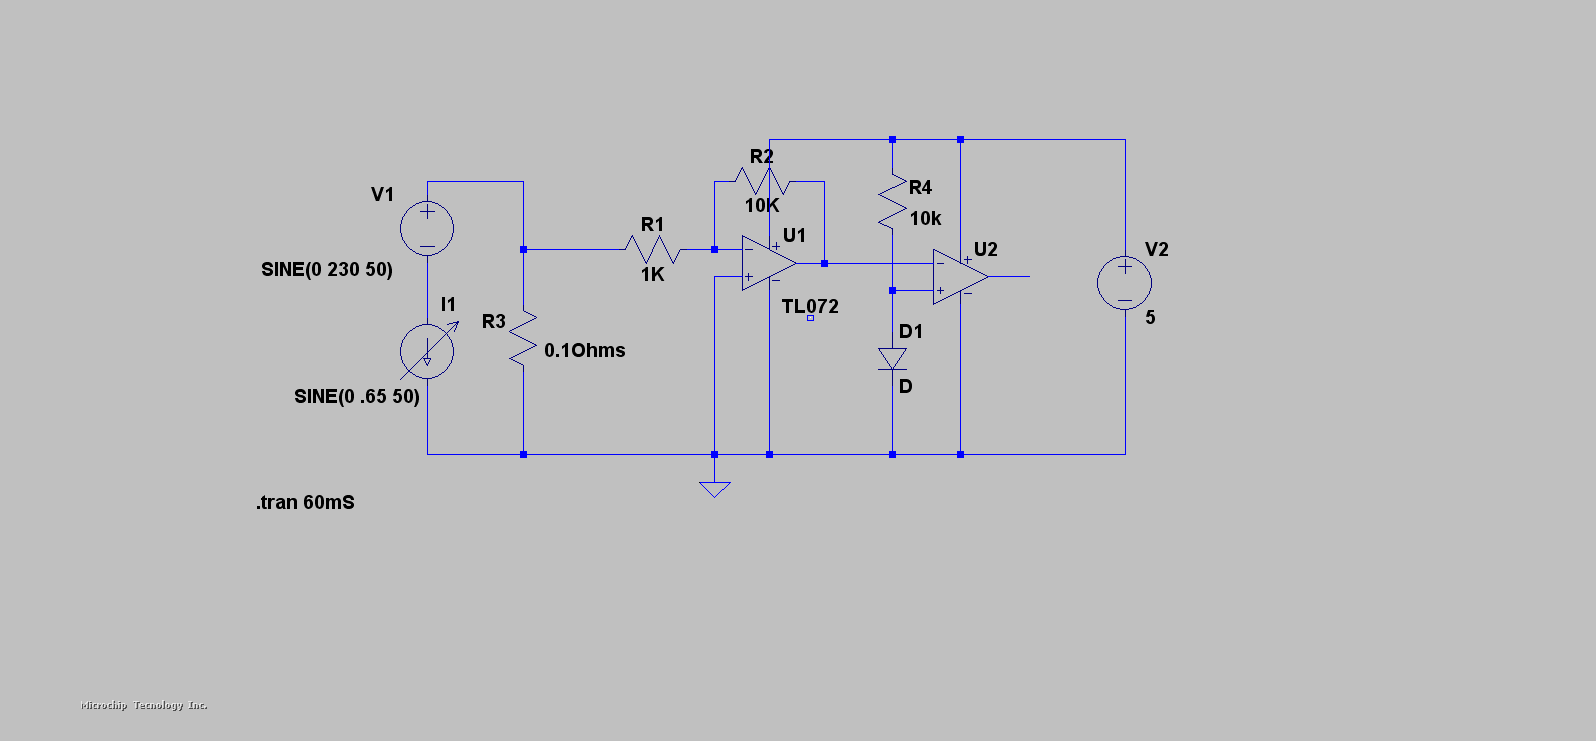 Ac Current Sense Pic 16f676 Microchip Battery Voltage Monitor Circuit By Lm339 Attached Images